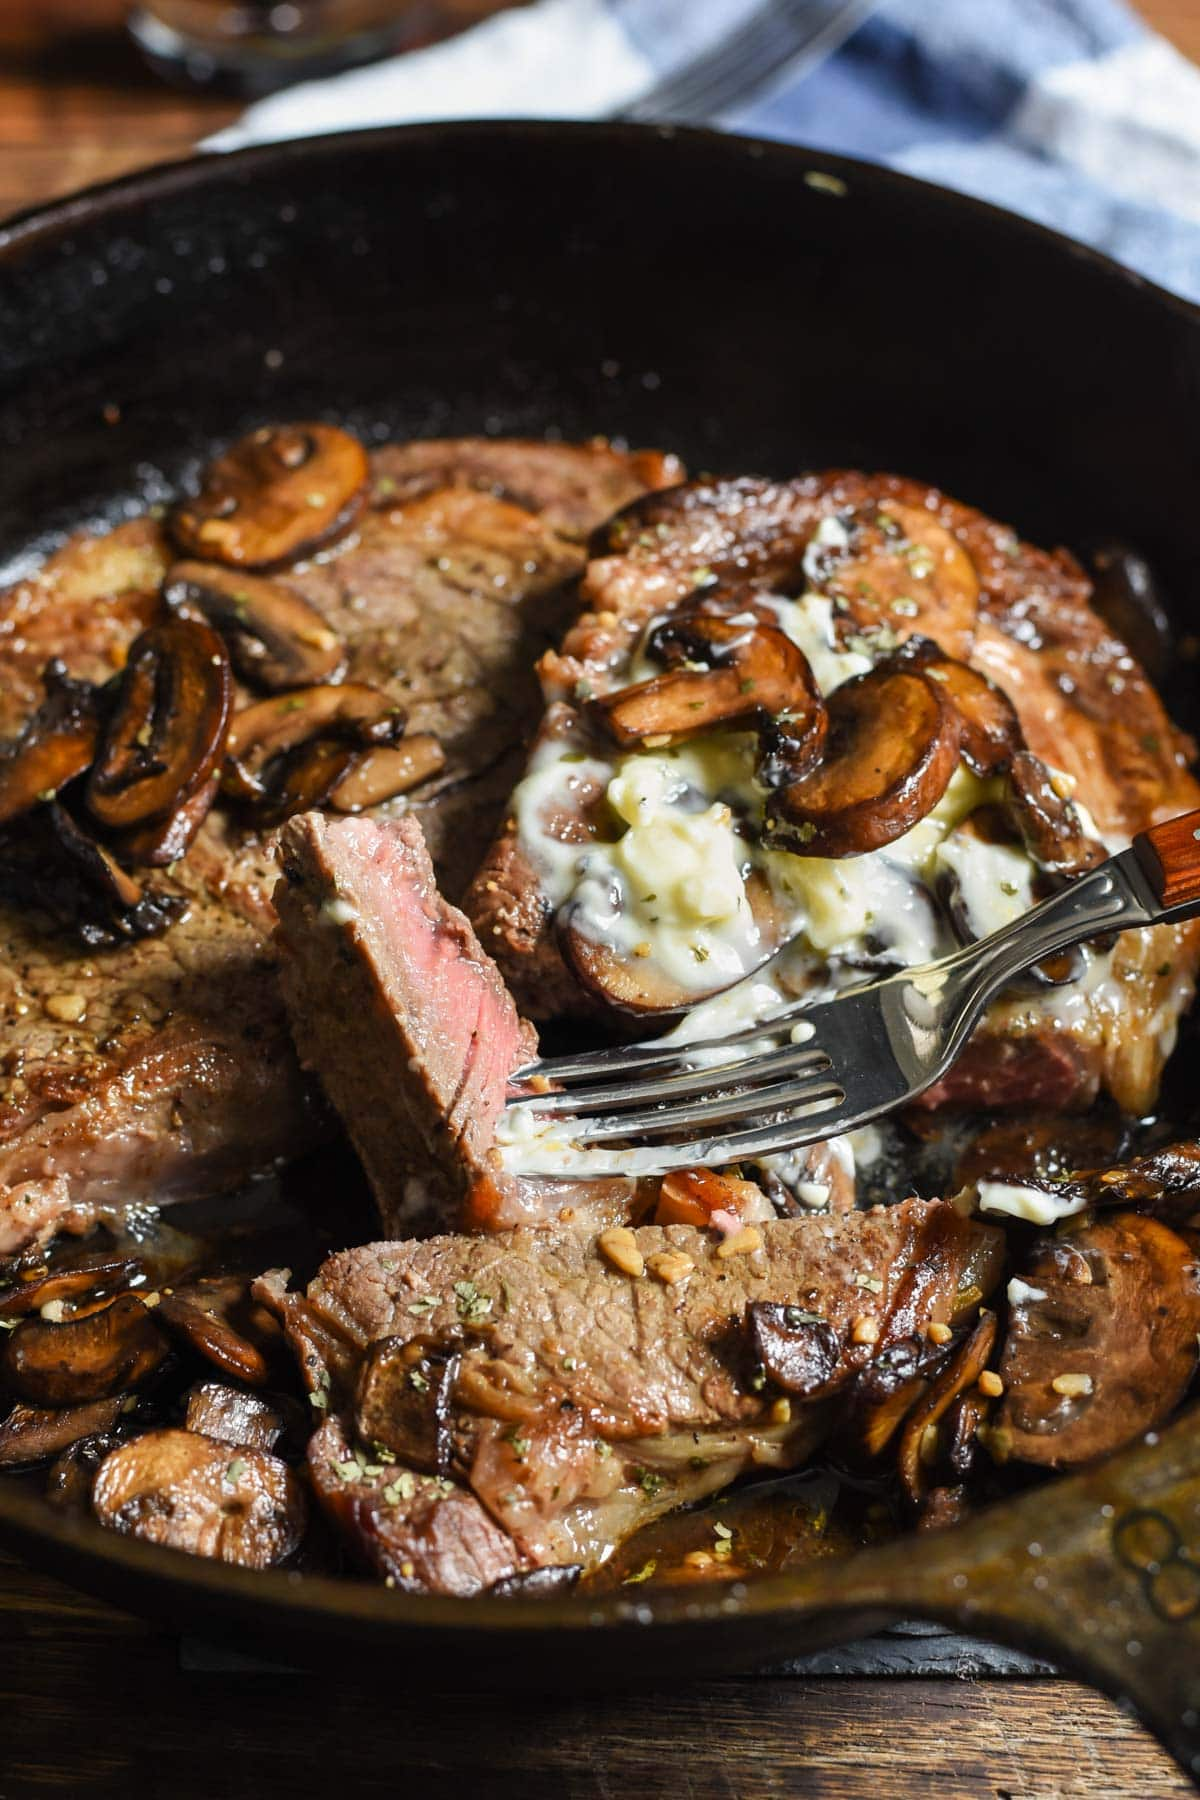 a bite of juicy pink ribeye steak surrounded by garlic mushrooms and butter in a cast iron skillet